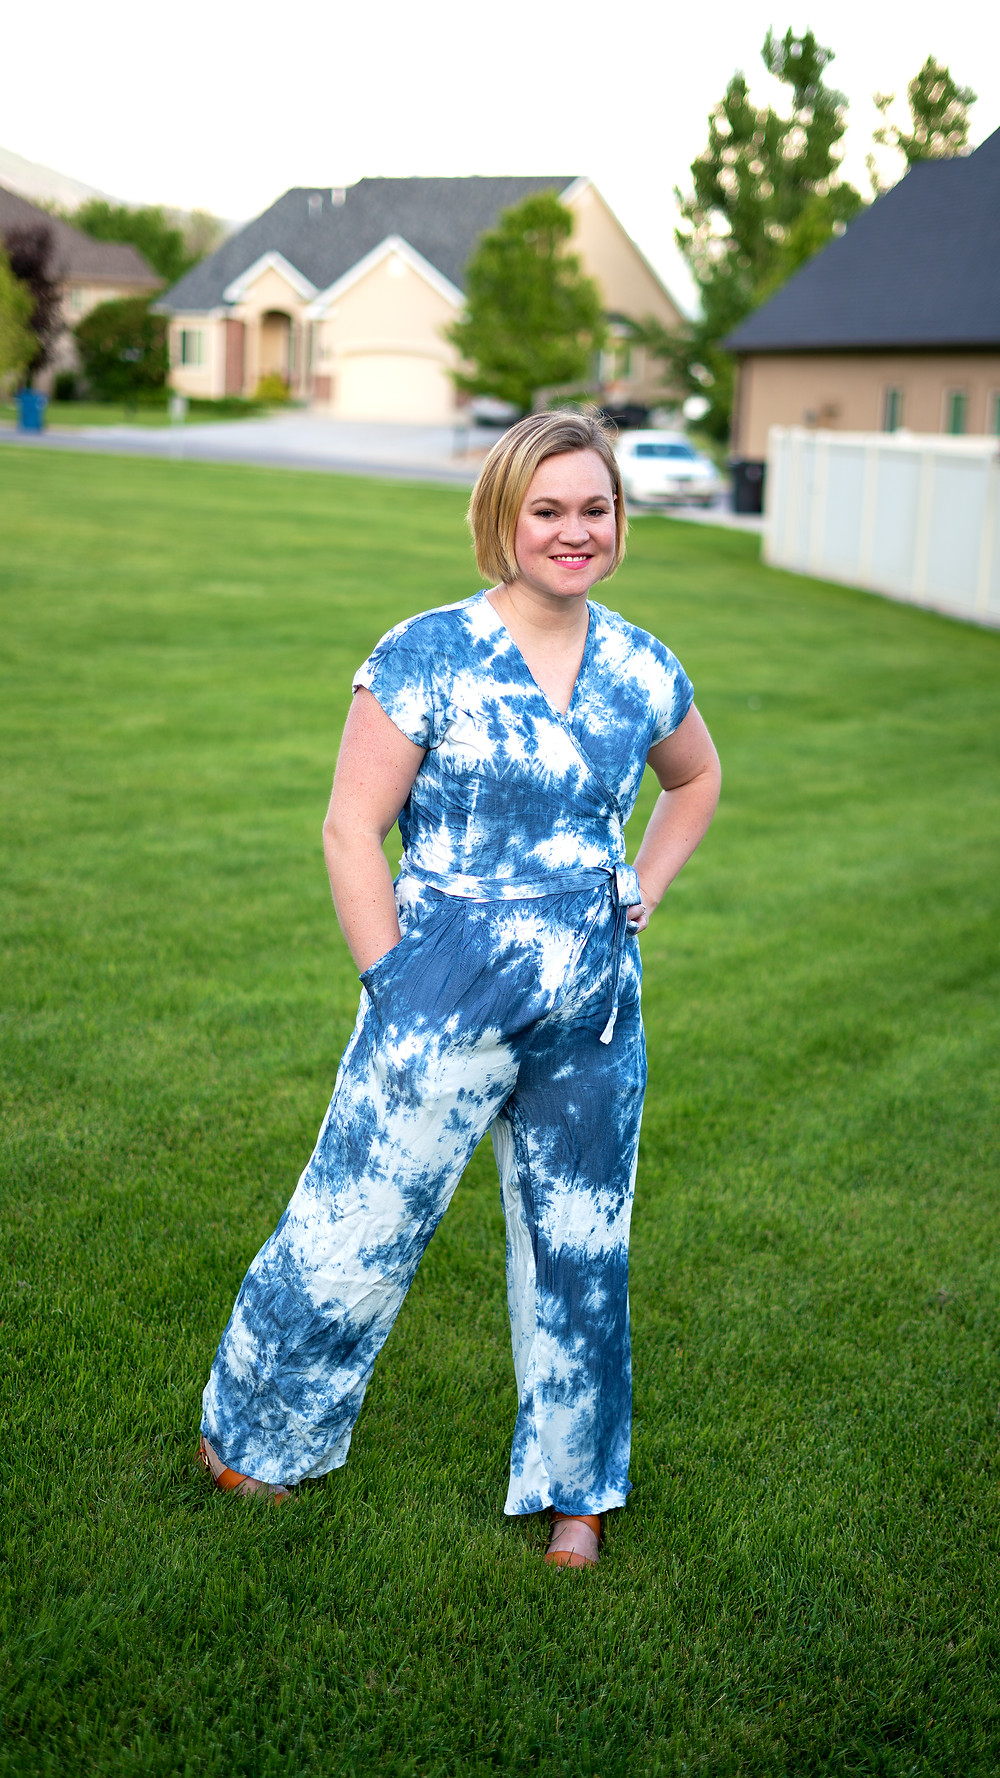 Zadie Jumpsuit by Paper Theory - Summer Sewing Collection - Blue Tie Dye